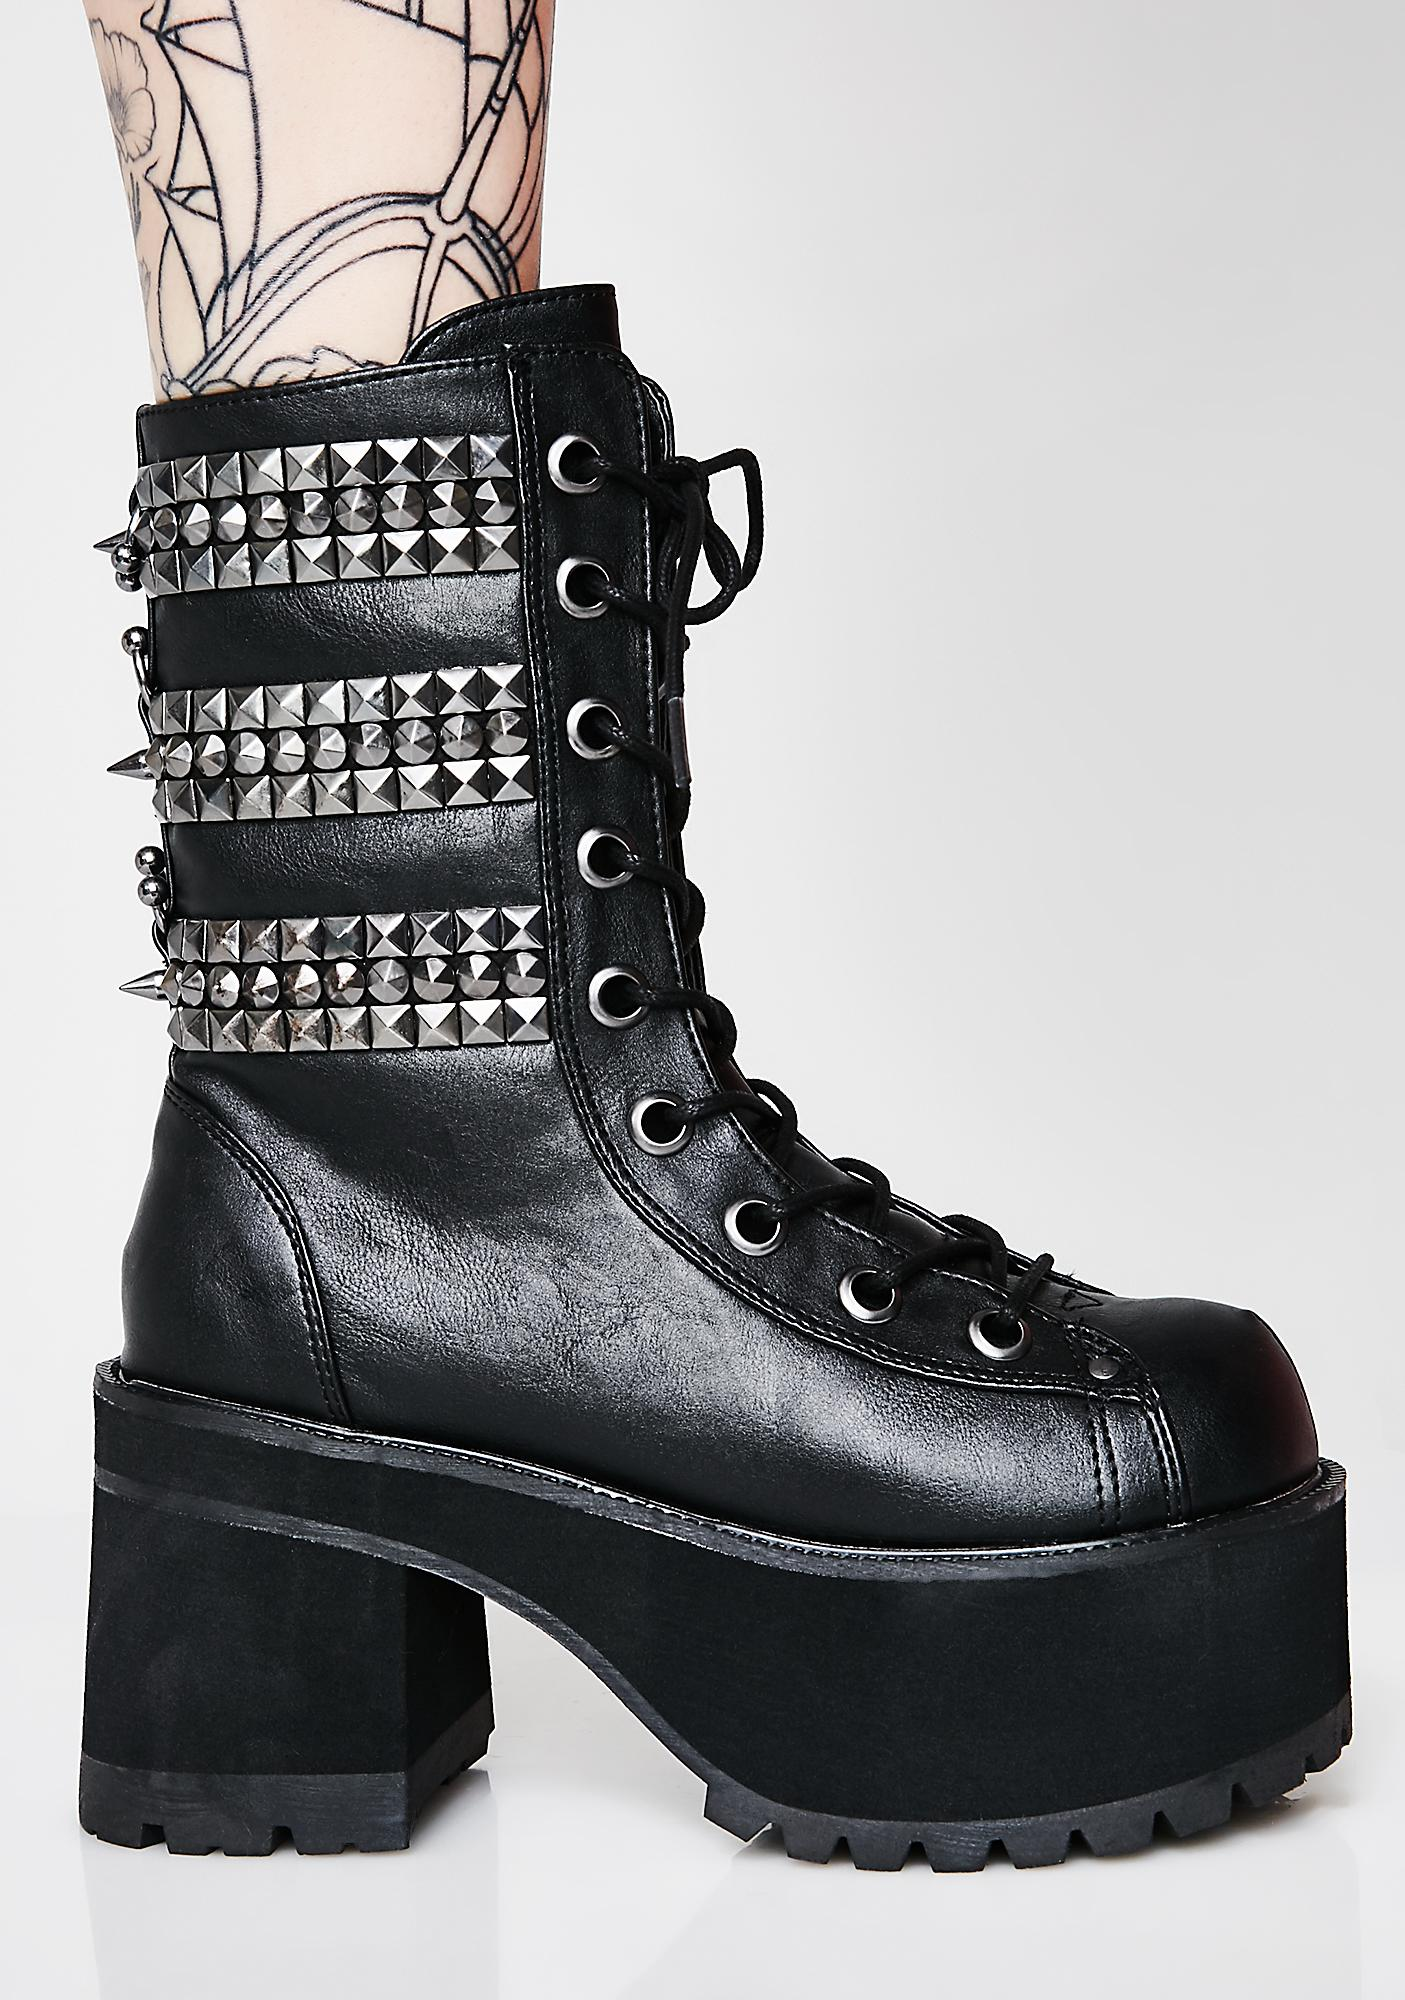 Demonia Rage Slayer Platform Boots